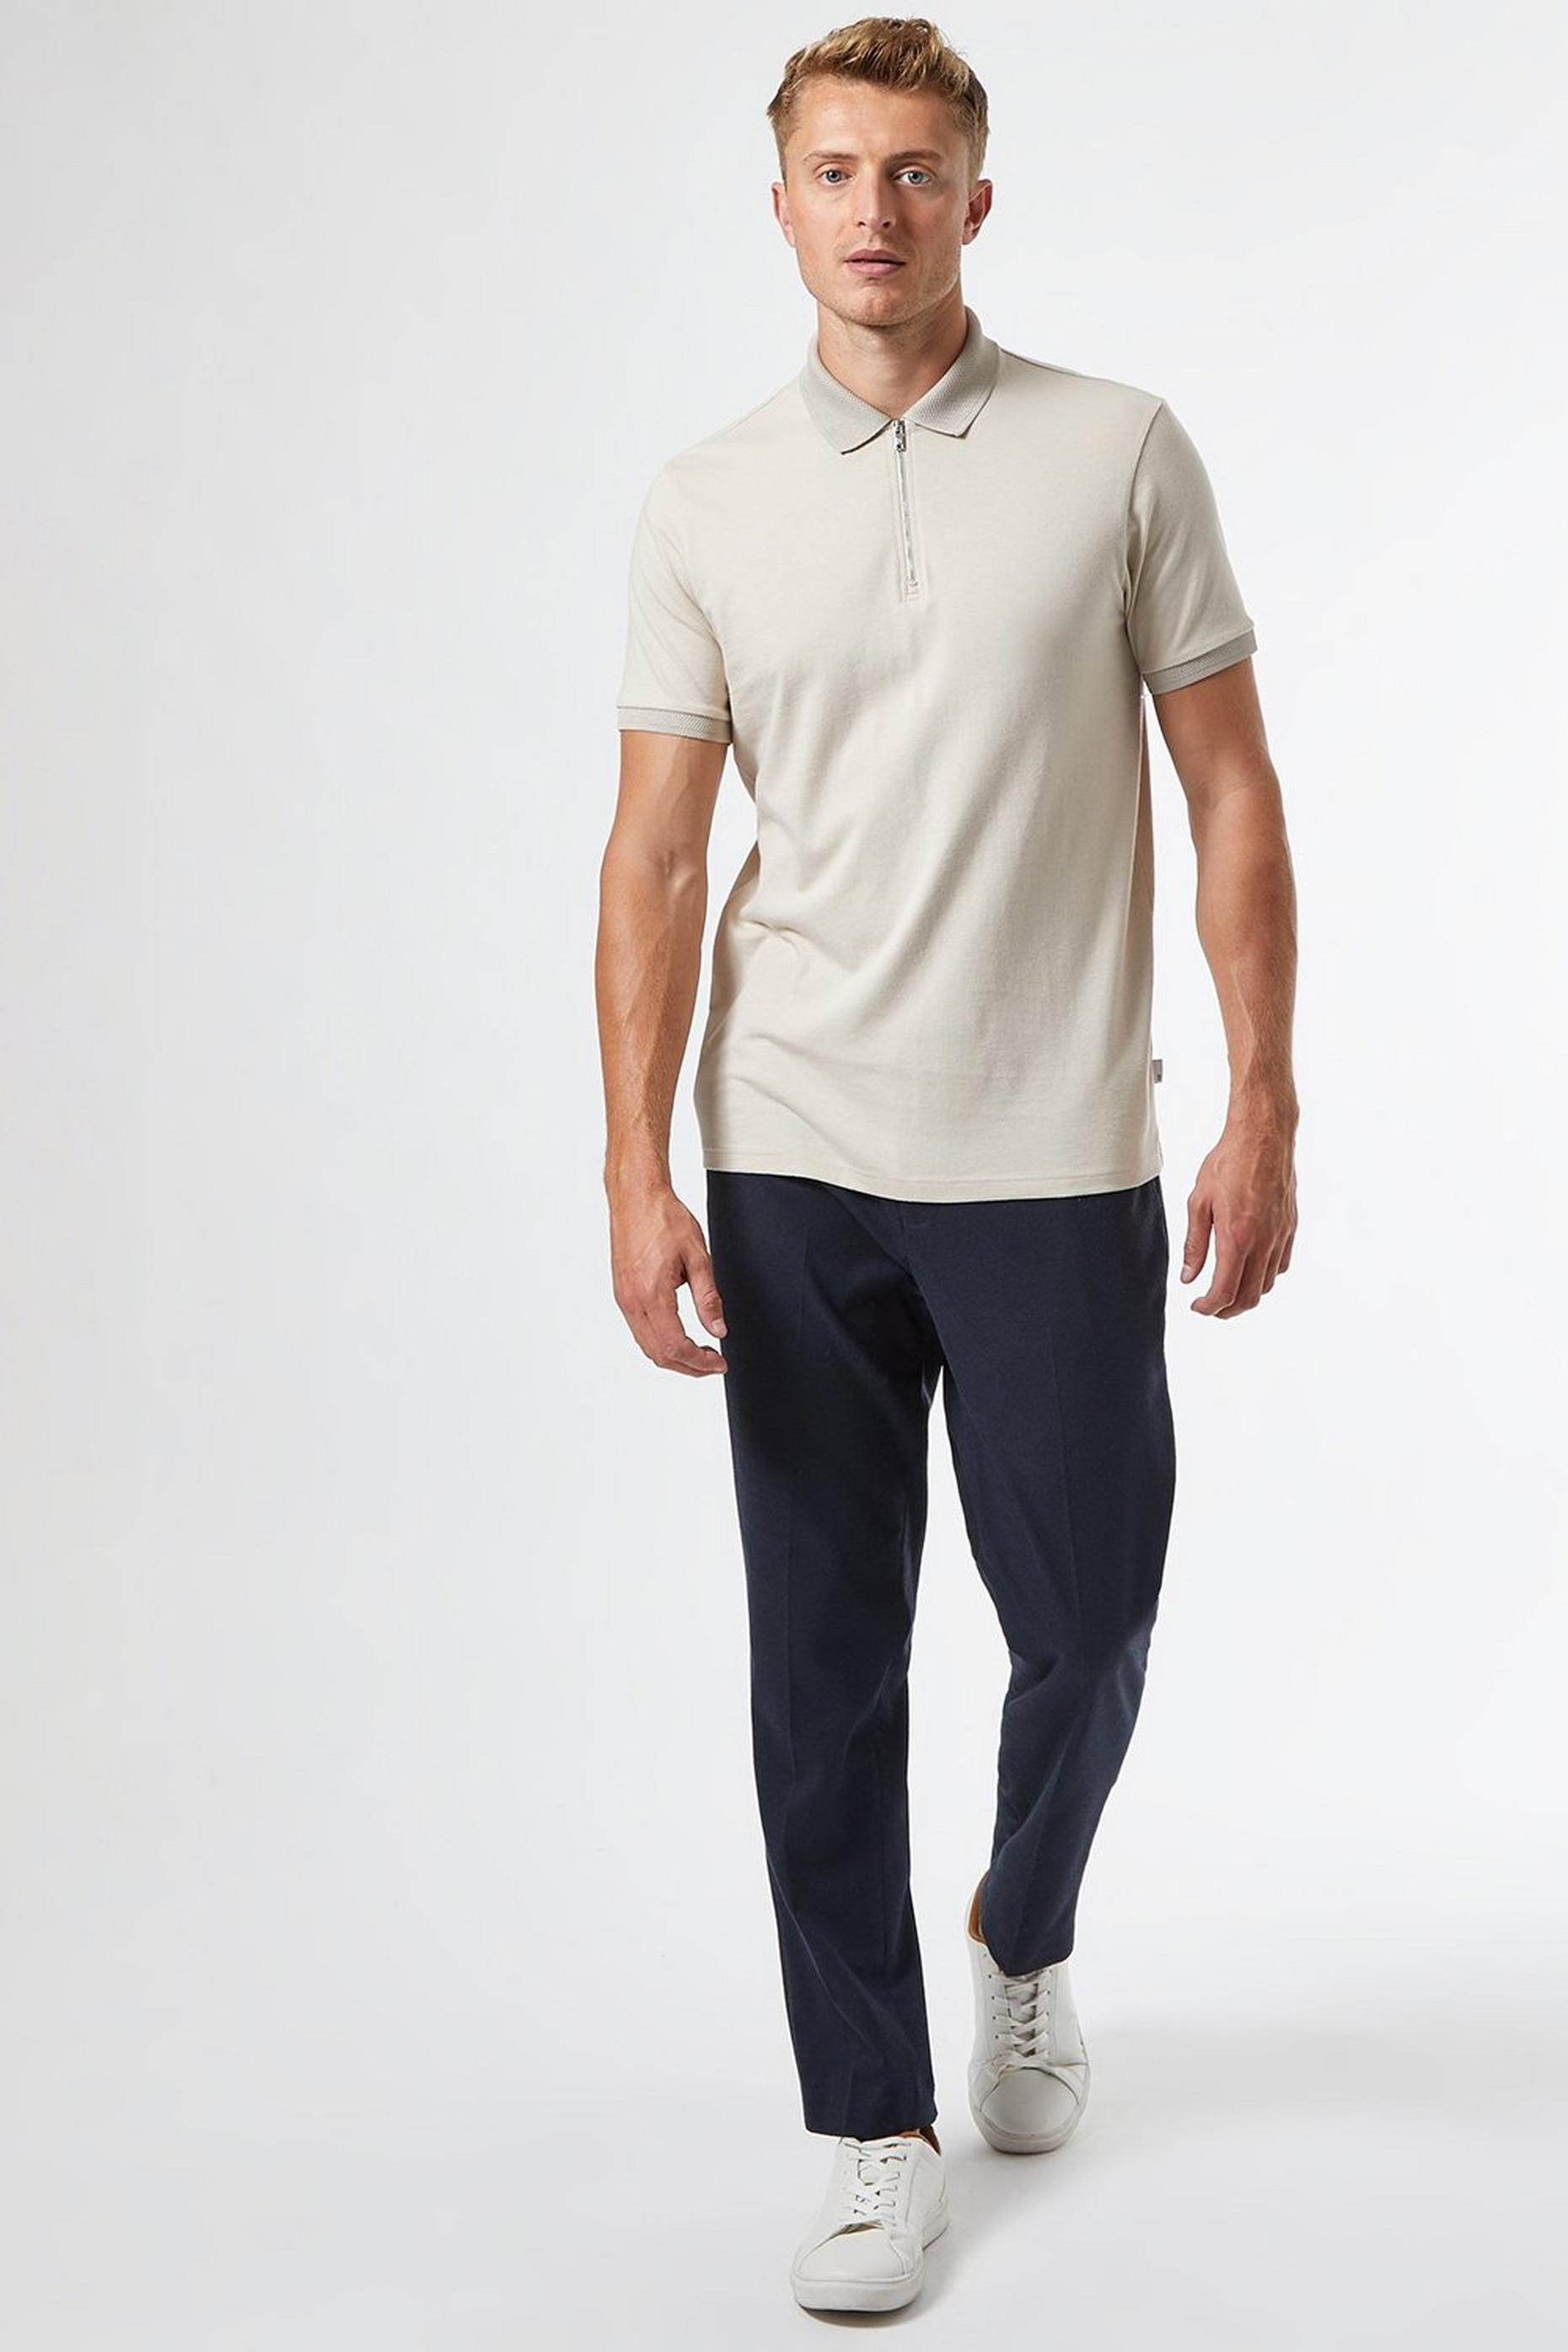 Ecru Zip Neck Polo Shirt